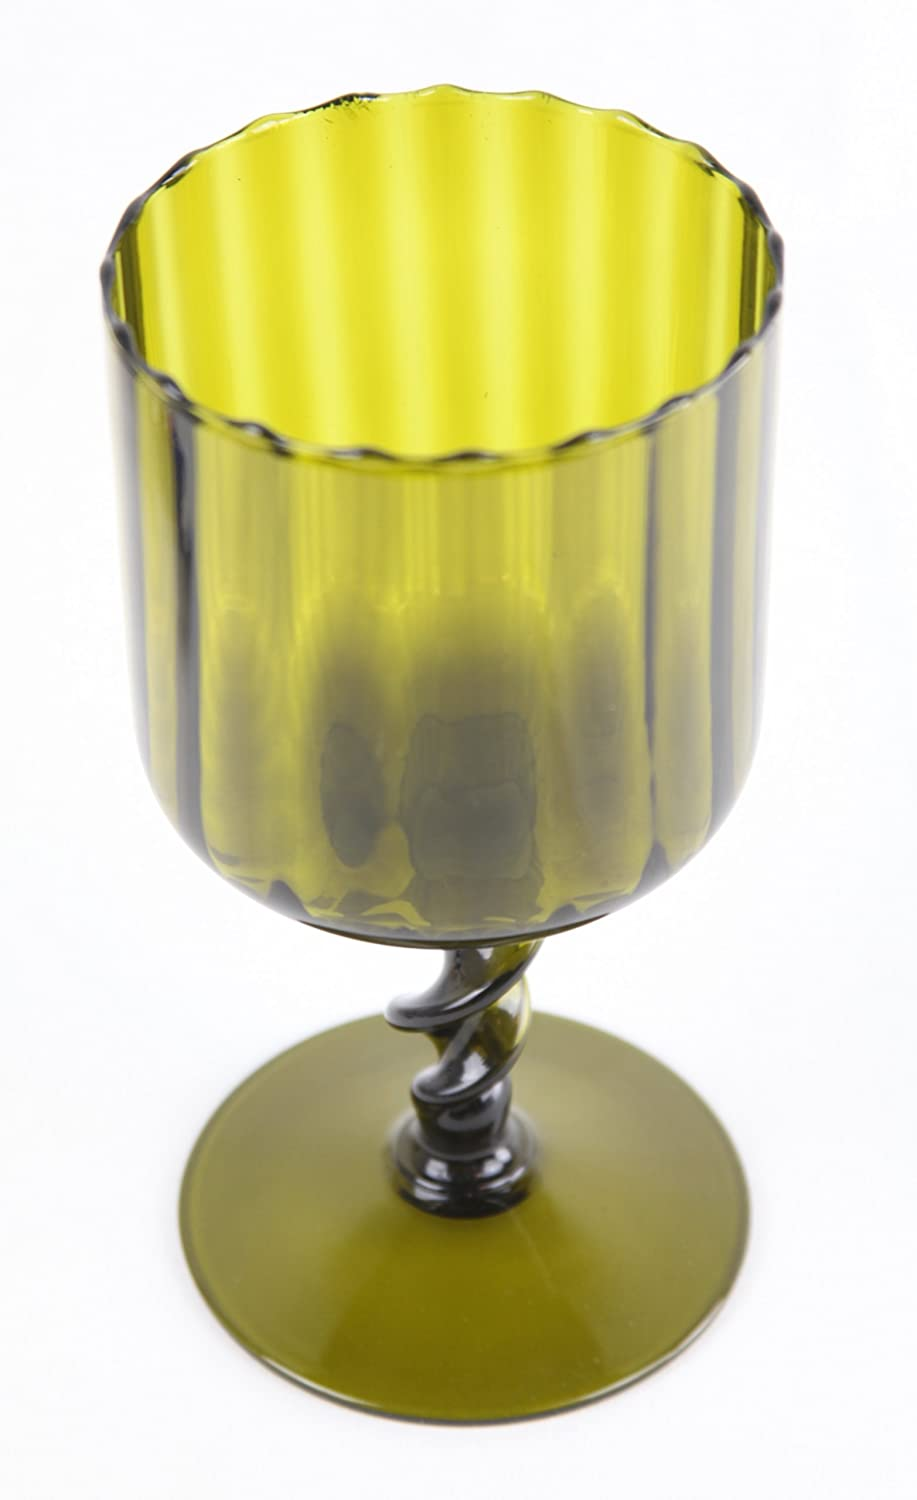 Vintage Avocado Green Glass Retro Twisted Stem Large Goblet Compote Dish